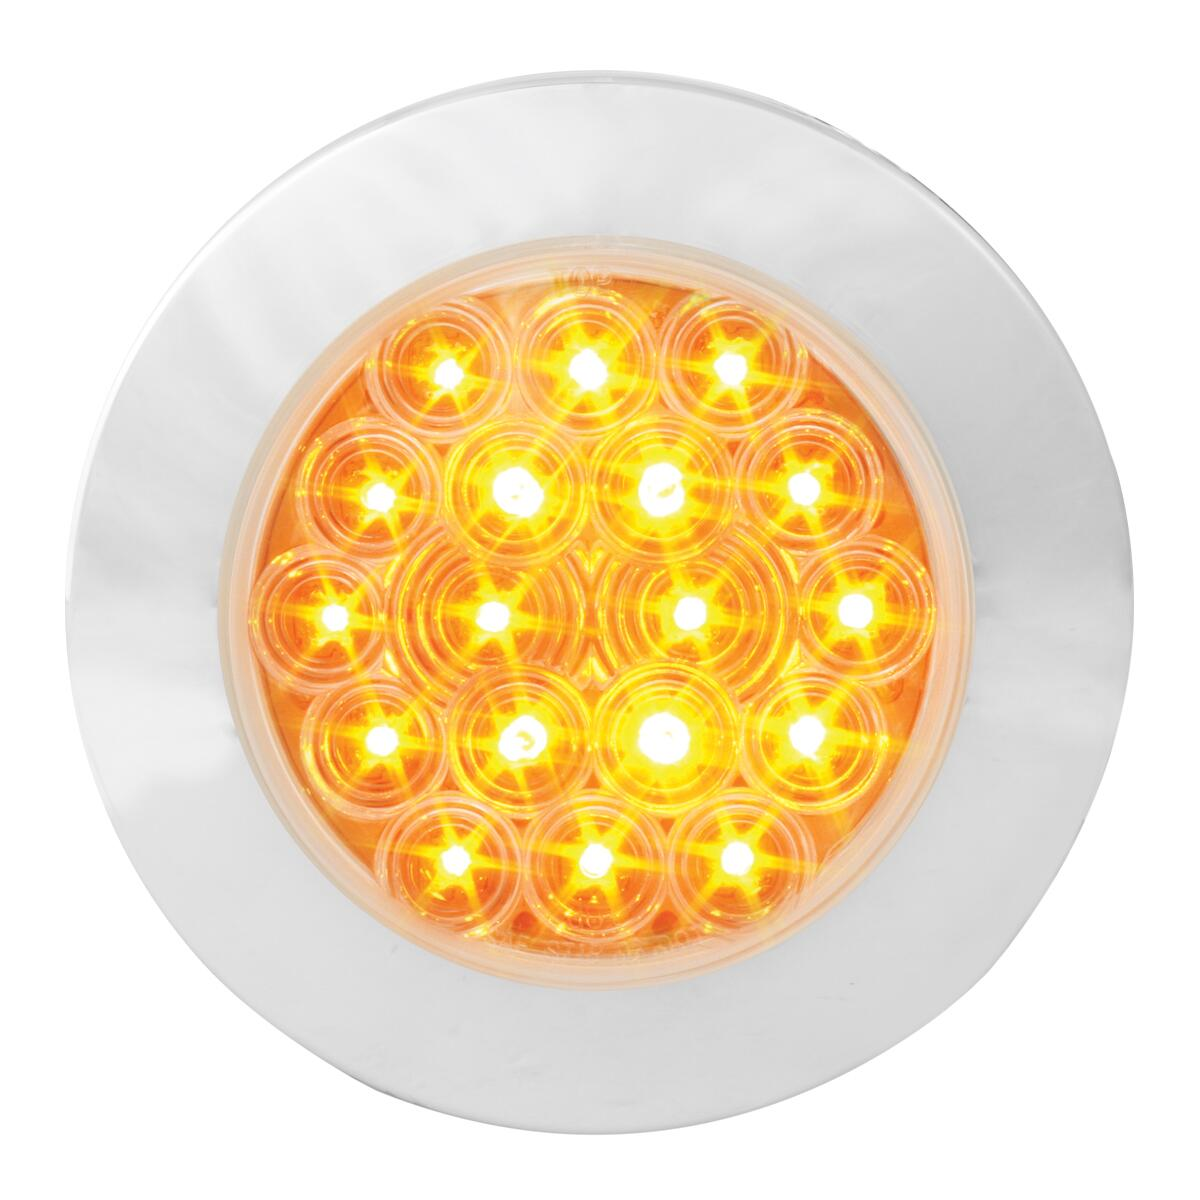 "75901 Amber/Clear 4"" Fleet Flange Mount LED Light with Chrome Twist & Lock Bezel"